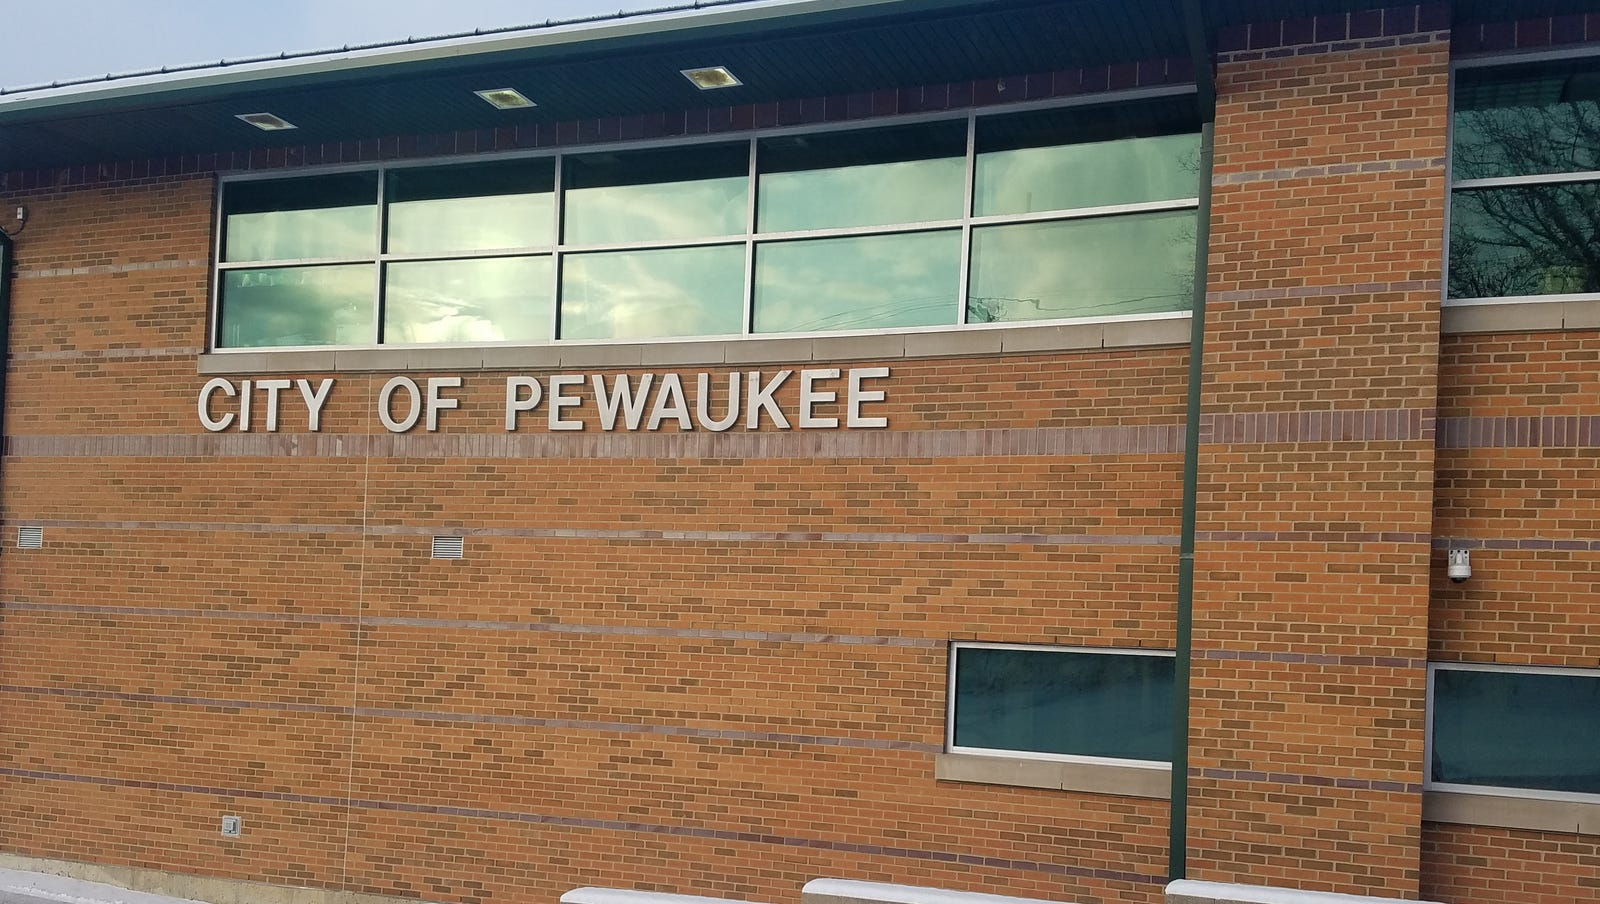 New 33,000-square-foot veterinary clinic proposed in the city of Pewaukee